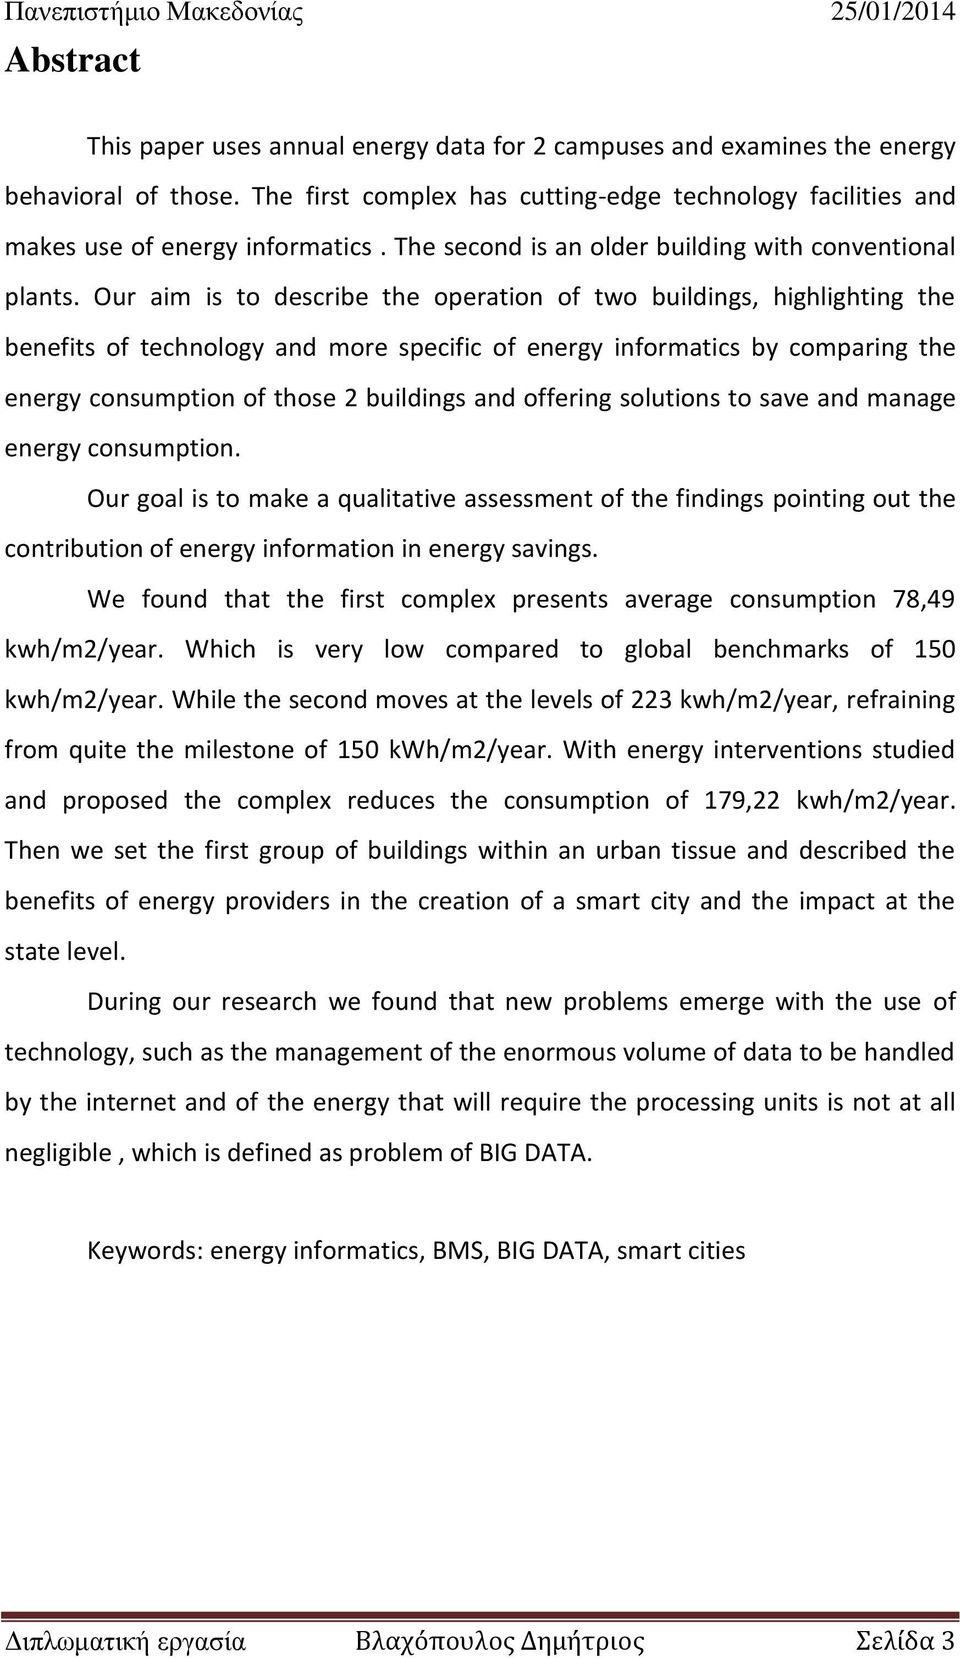 Our aim is to describe the operation of two buildings, highlighting the benefits of technology and more specific of energy informatics by comparing the energy consumption of those 2 buildings and